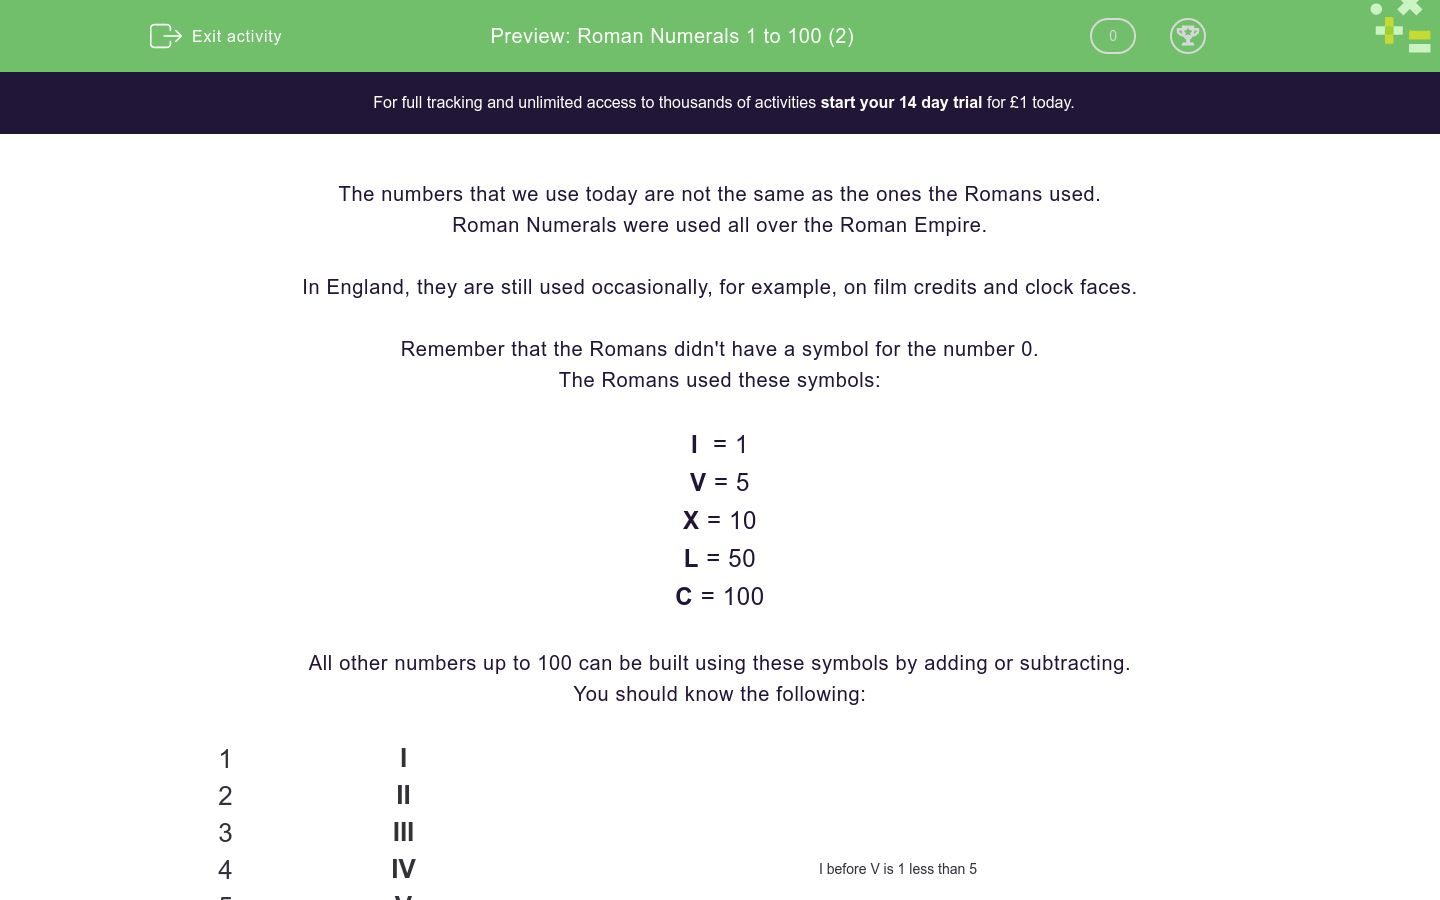 Roman Numerals 1 To 100 2 Worksheet